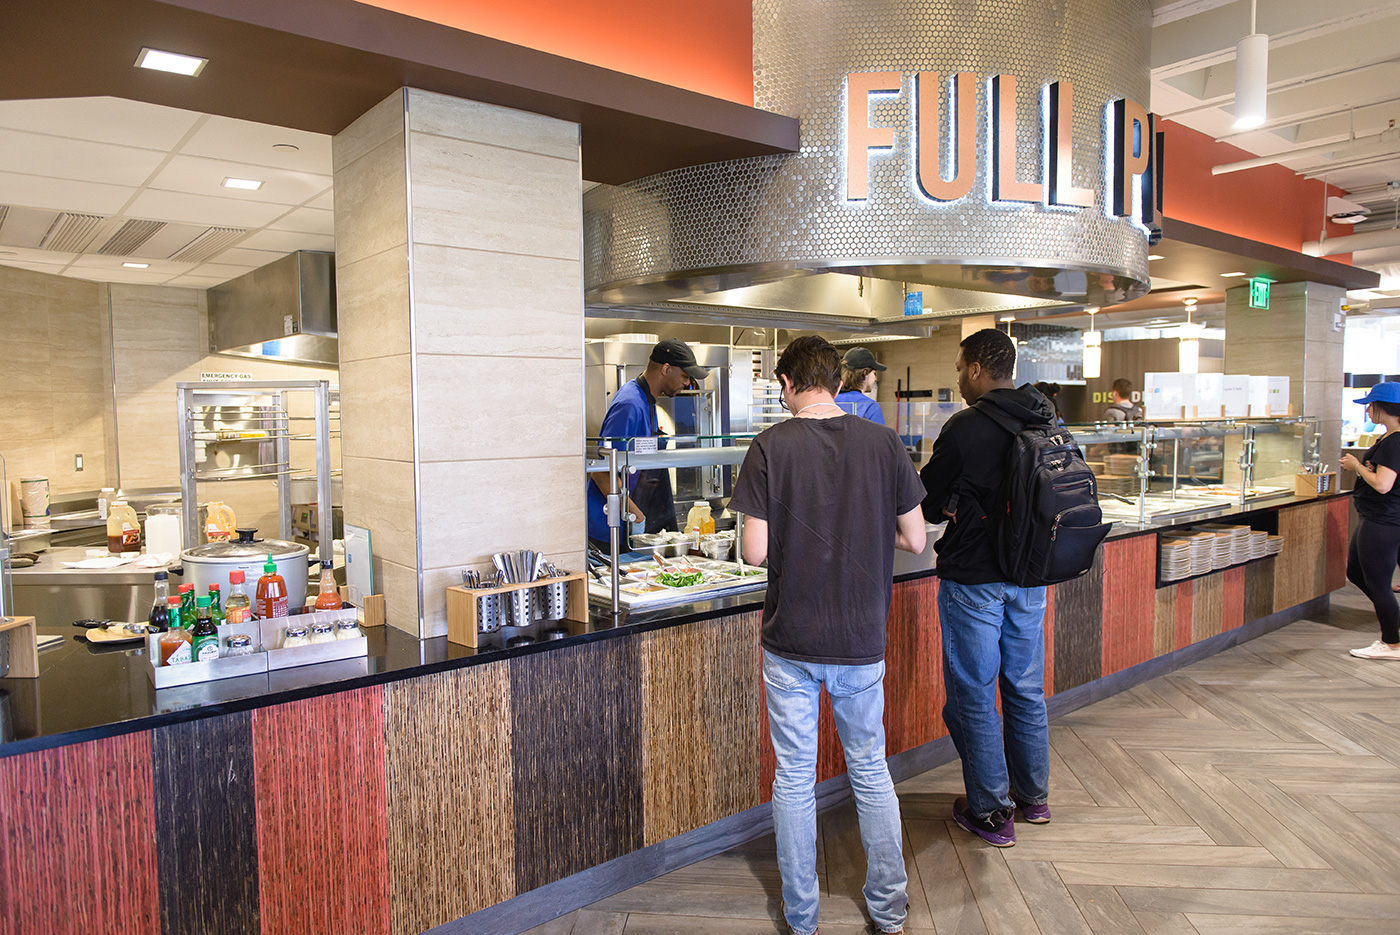 The South Campus Dining Commons, located in the center of campus, features nine different cooking stations including an omelet bar, a waffle bar and an exhibition station where students can create their own culinary masterpieces.